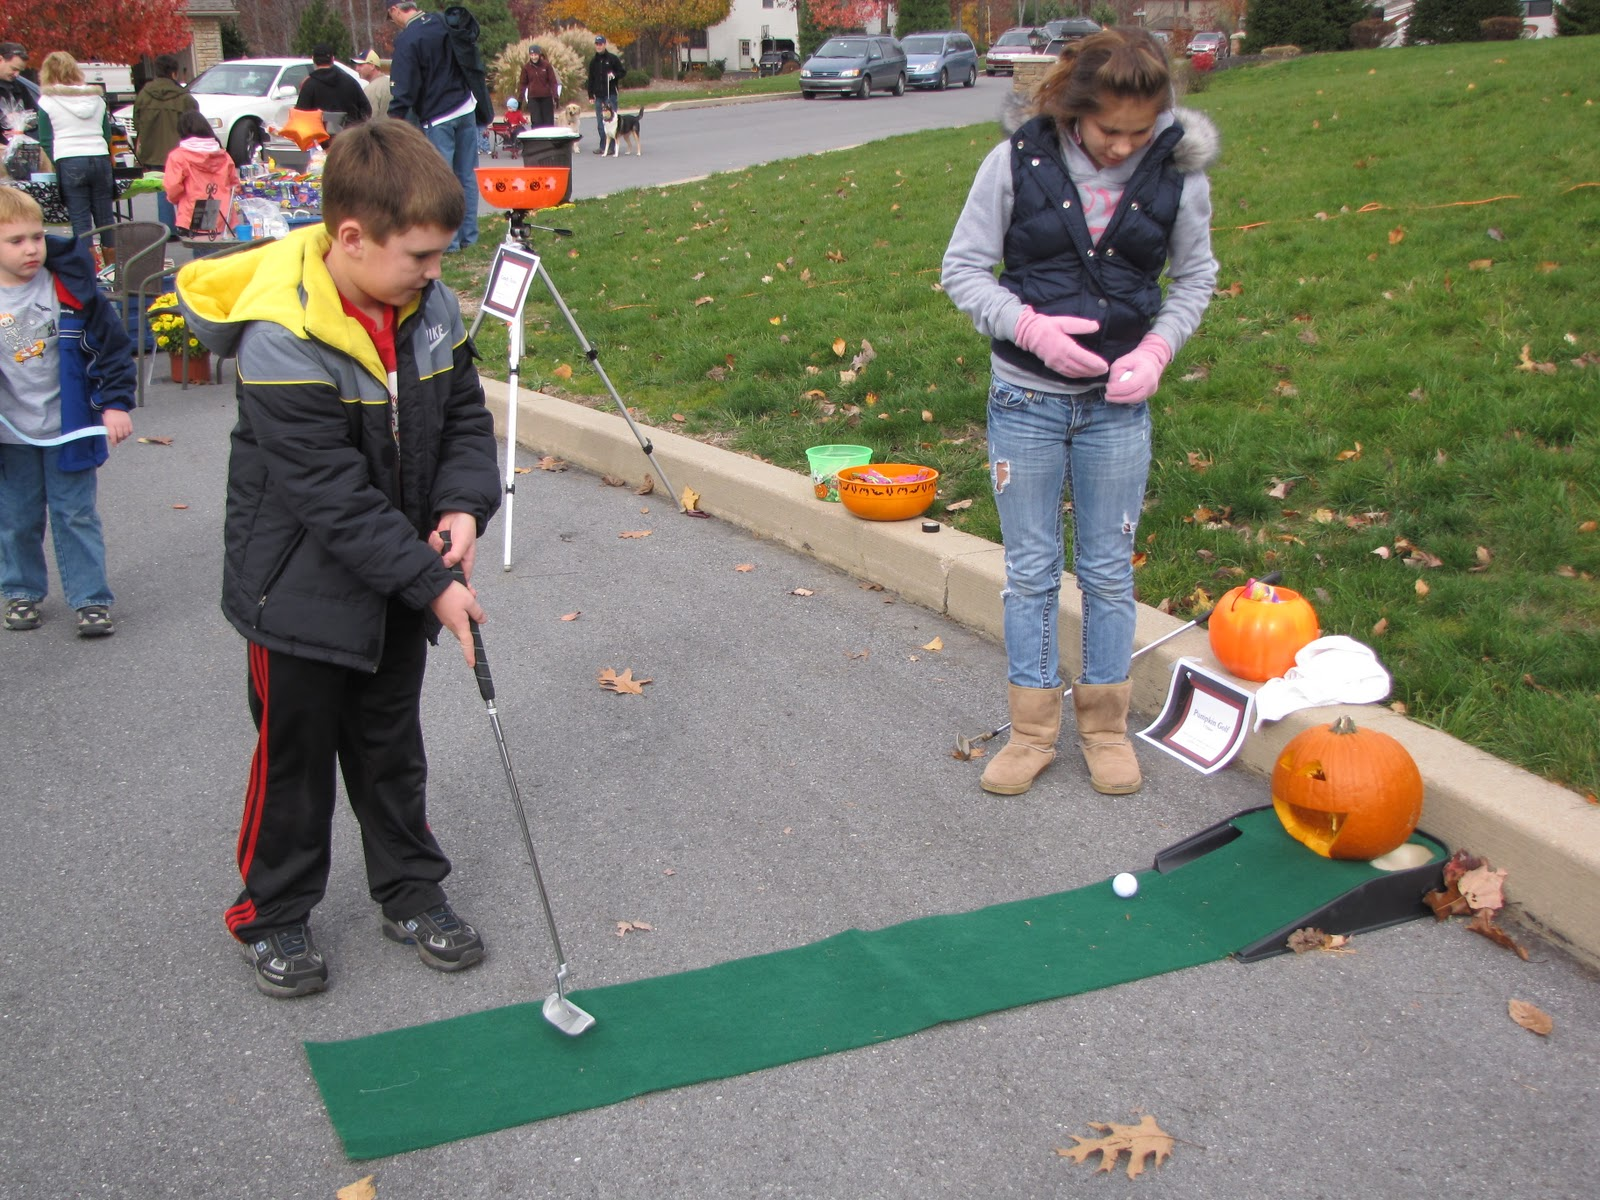 Uncategorized Pumpkin Golf community service halloween party game 2 pumpkin golf in it to get the prize for this you had ball mouth of alot children including mrs bomboys son lov